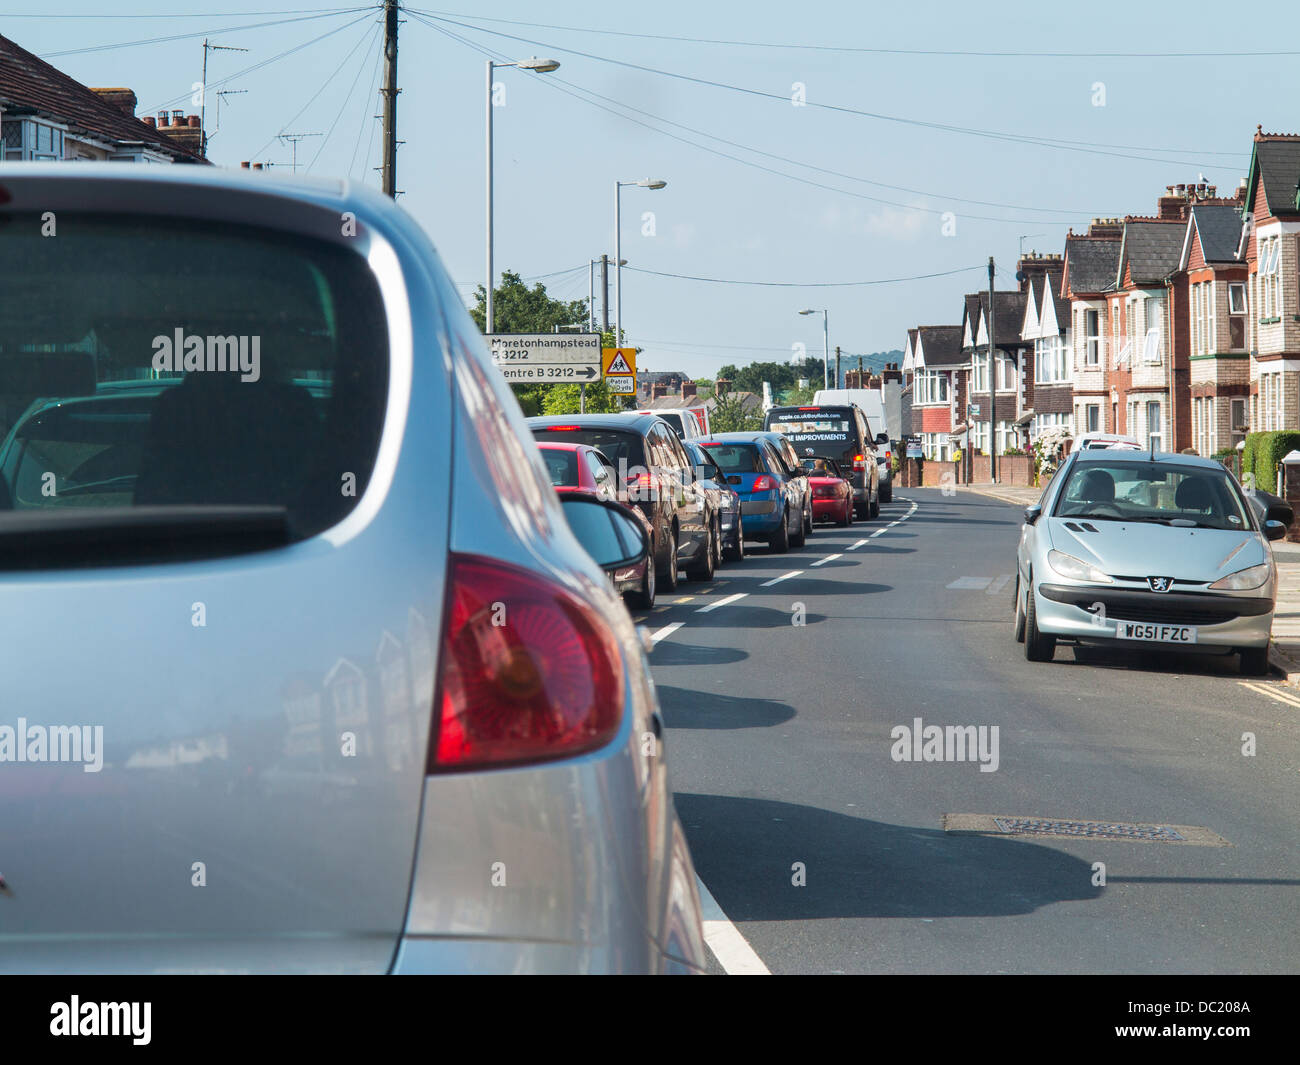 Cars stuck in a traffic queue, Exeter, Devon, England - Stock Image